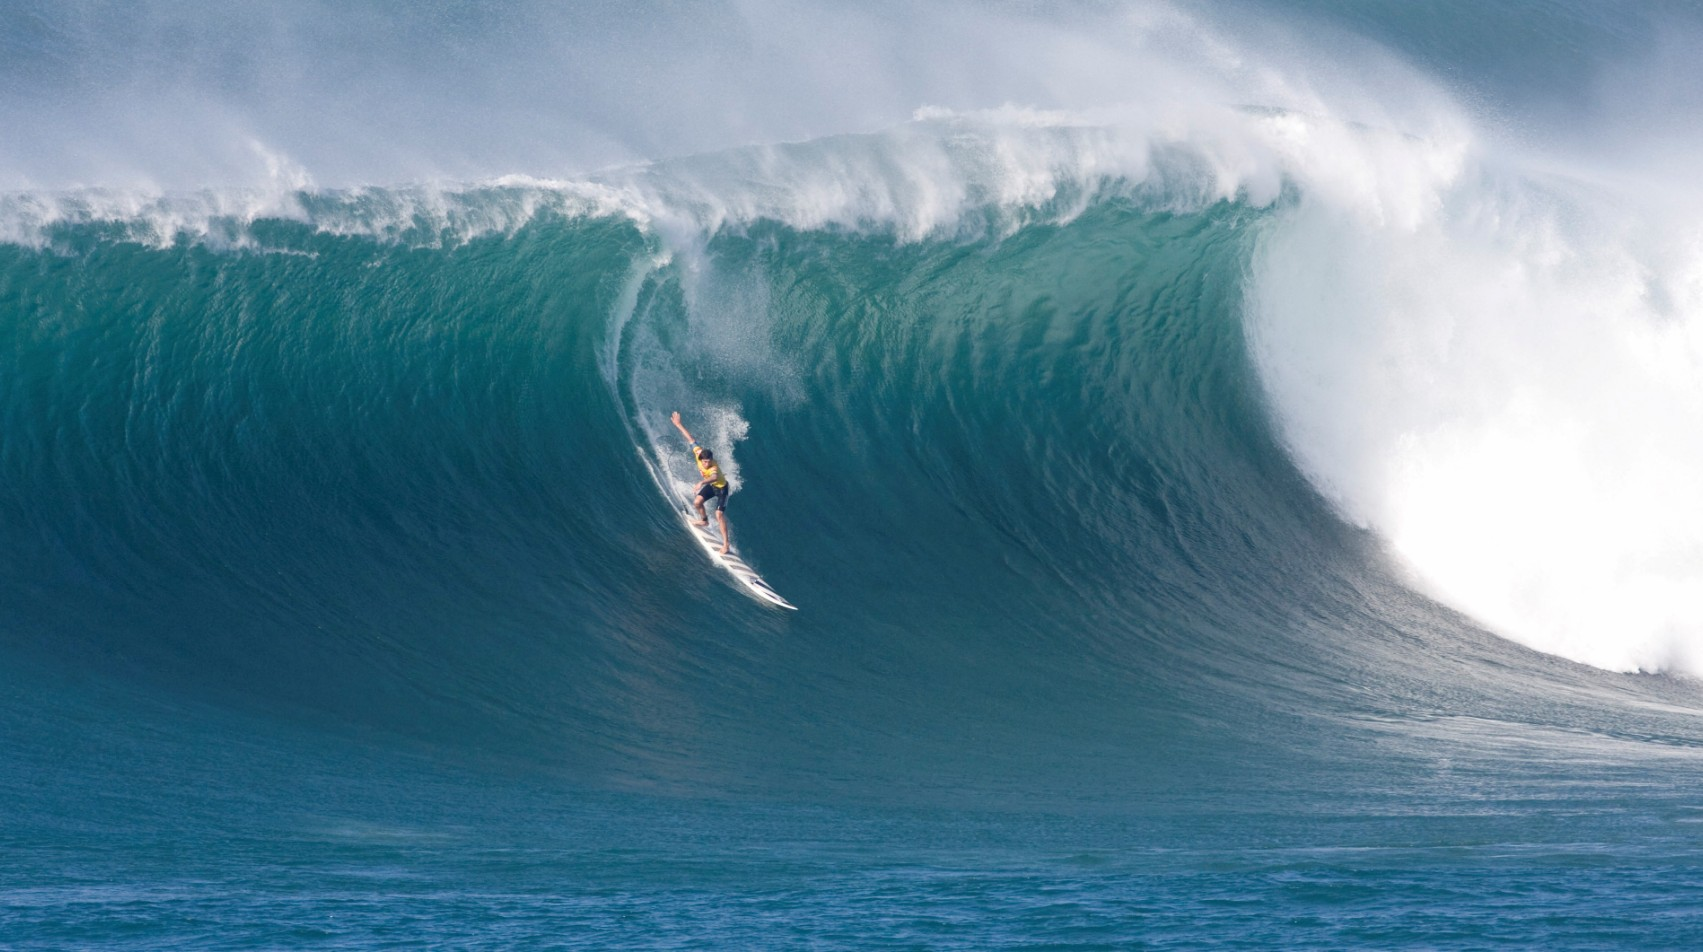 Big Wave Surfing | Aloha Surf Guide